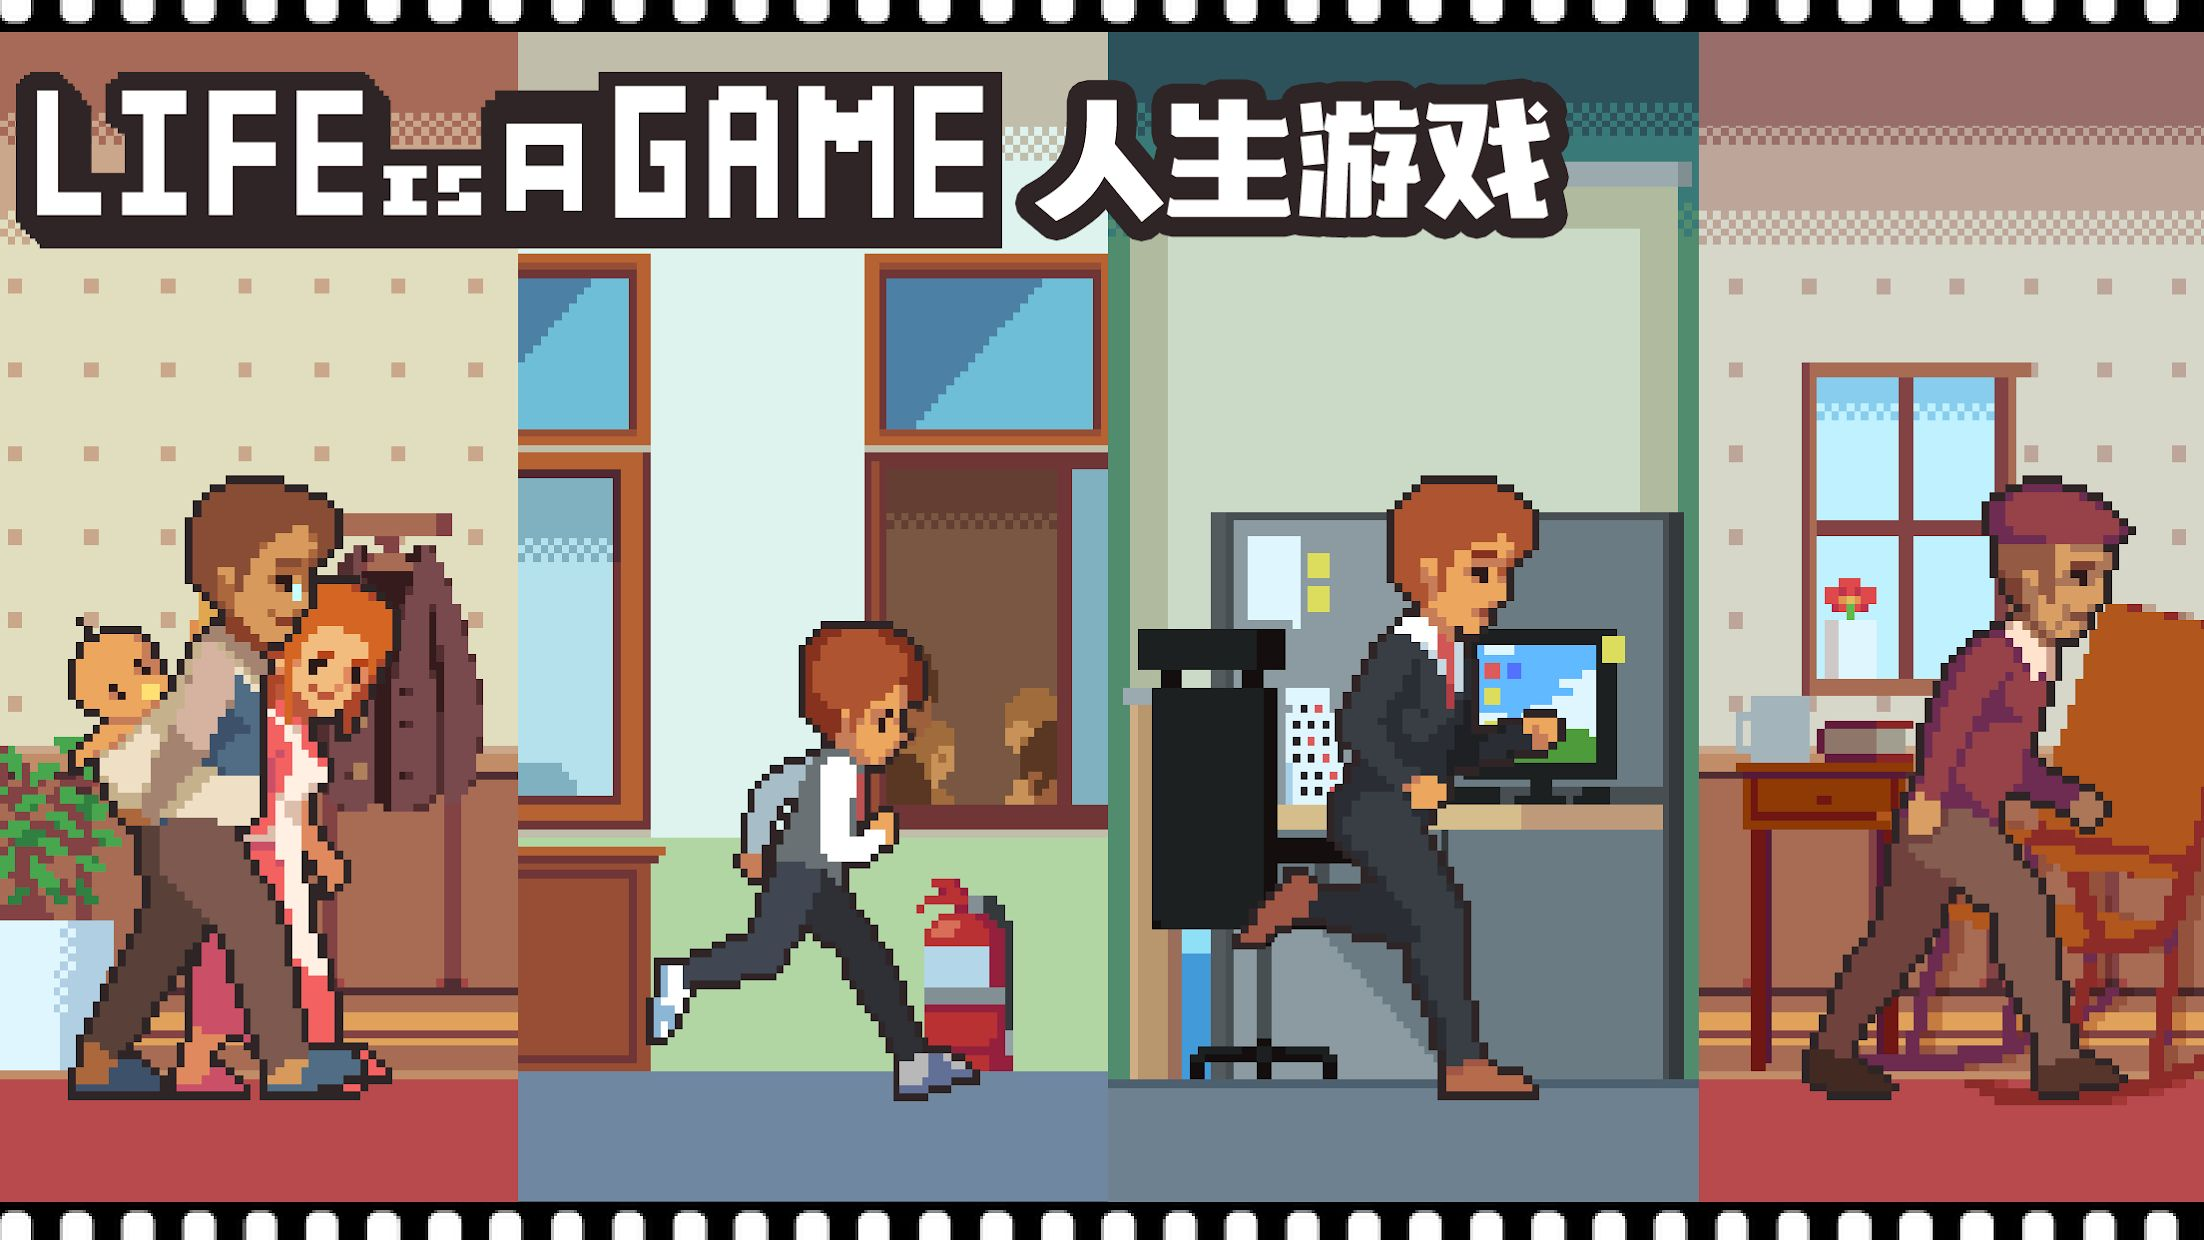 Life is a game : 人生游戏 游戏截图3